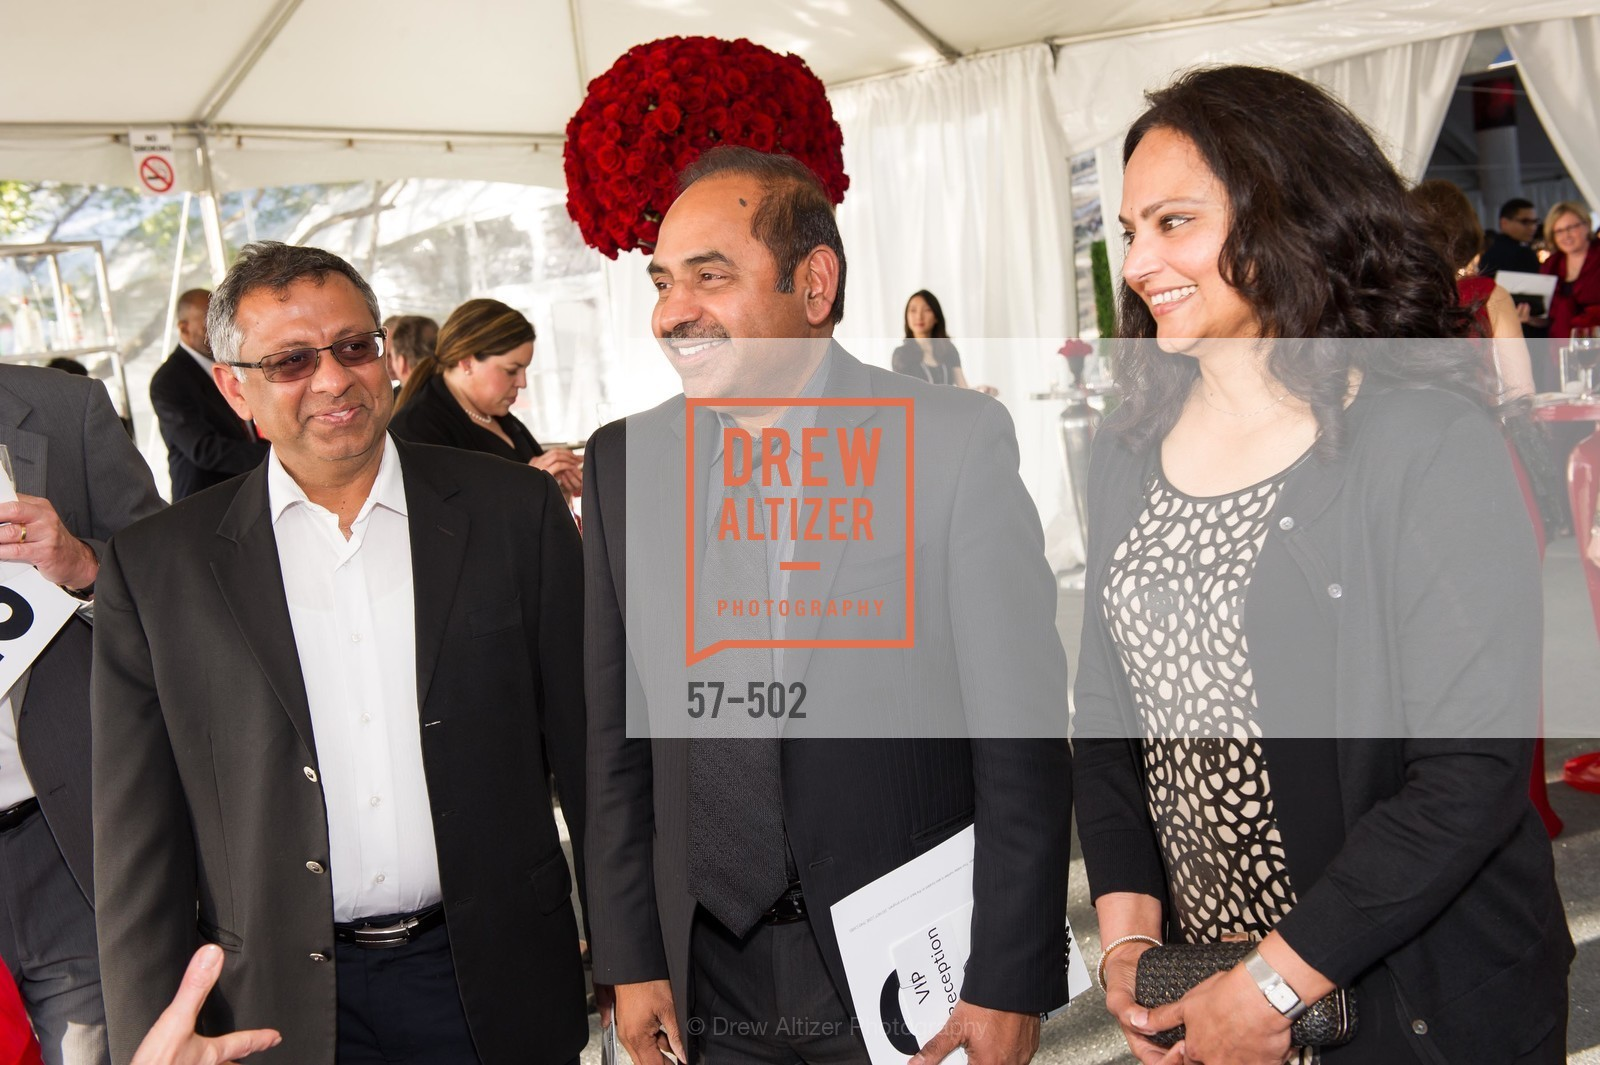 Sanjeev Kumar, Sagar Anisingaraju, Latha Anisingaraju, 2014 RED CROSS Gala Honoring Paula Downey as the American Red Cross Bay Area Chapter Humanitarian CEO of the Year, US. Treasure Island (The Great Lawn), April 5th, 2014,Drew Altizer, Drew Altizer Photography, full-service agency, private events, San Francisco photographer, photographer california